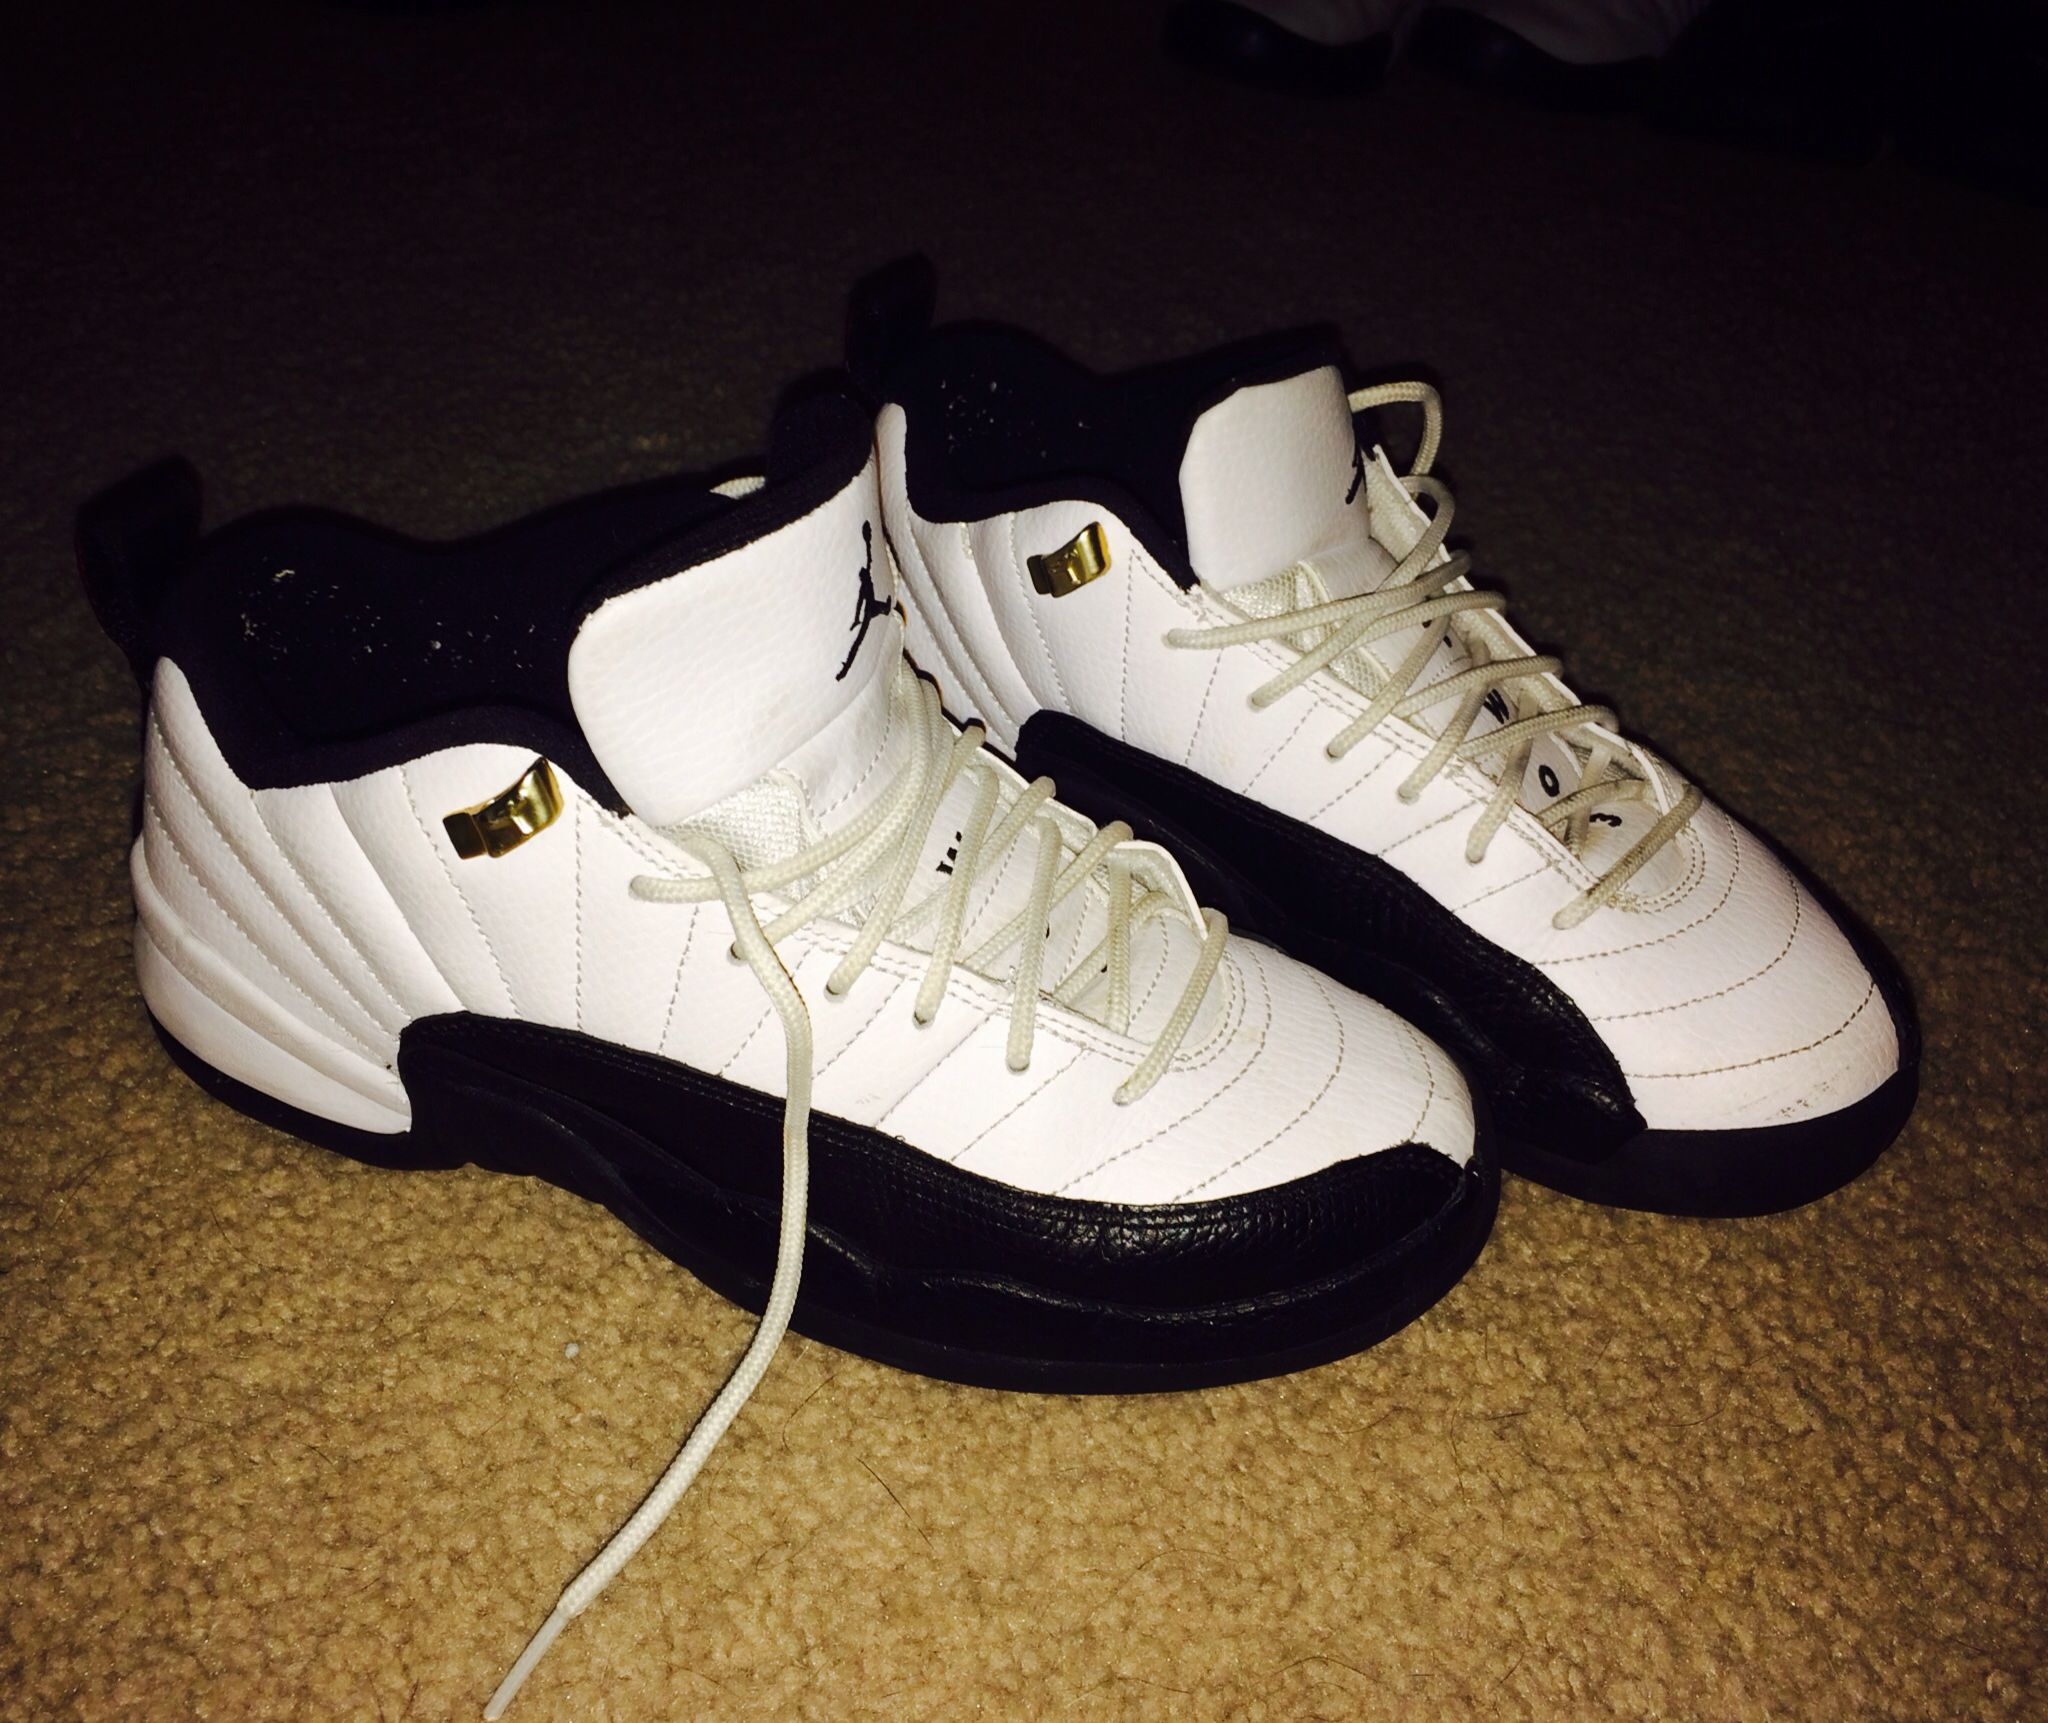 premium selection 4a154 5e85e ... czech air jordan 12 xii retro low taxi white black taxi were released  on may 22